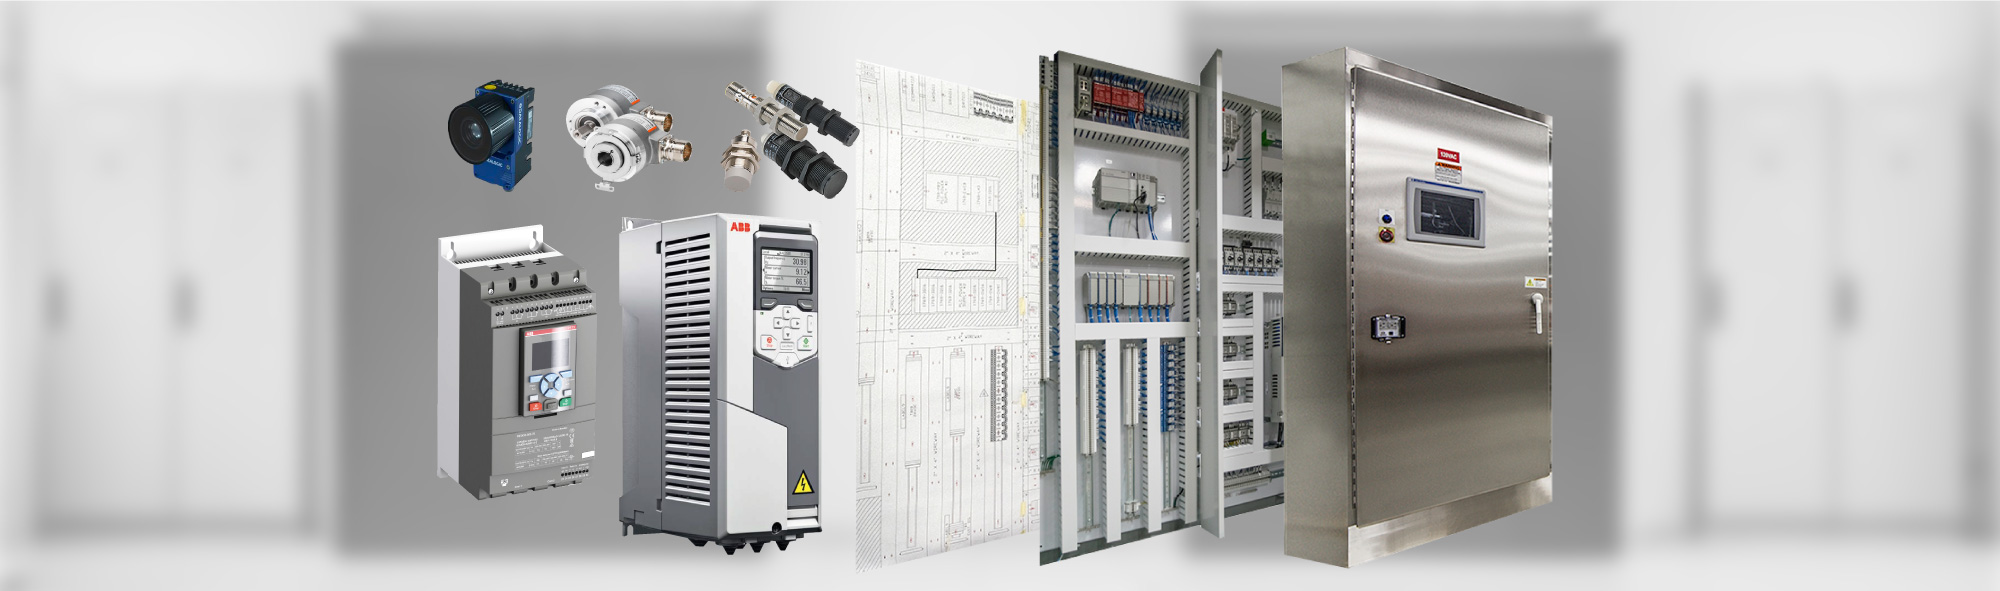 Preventive Maintenance&Equipment&Panel Board Electrical